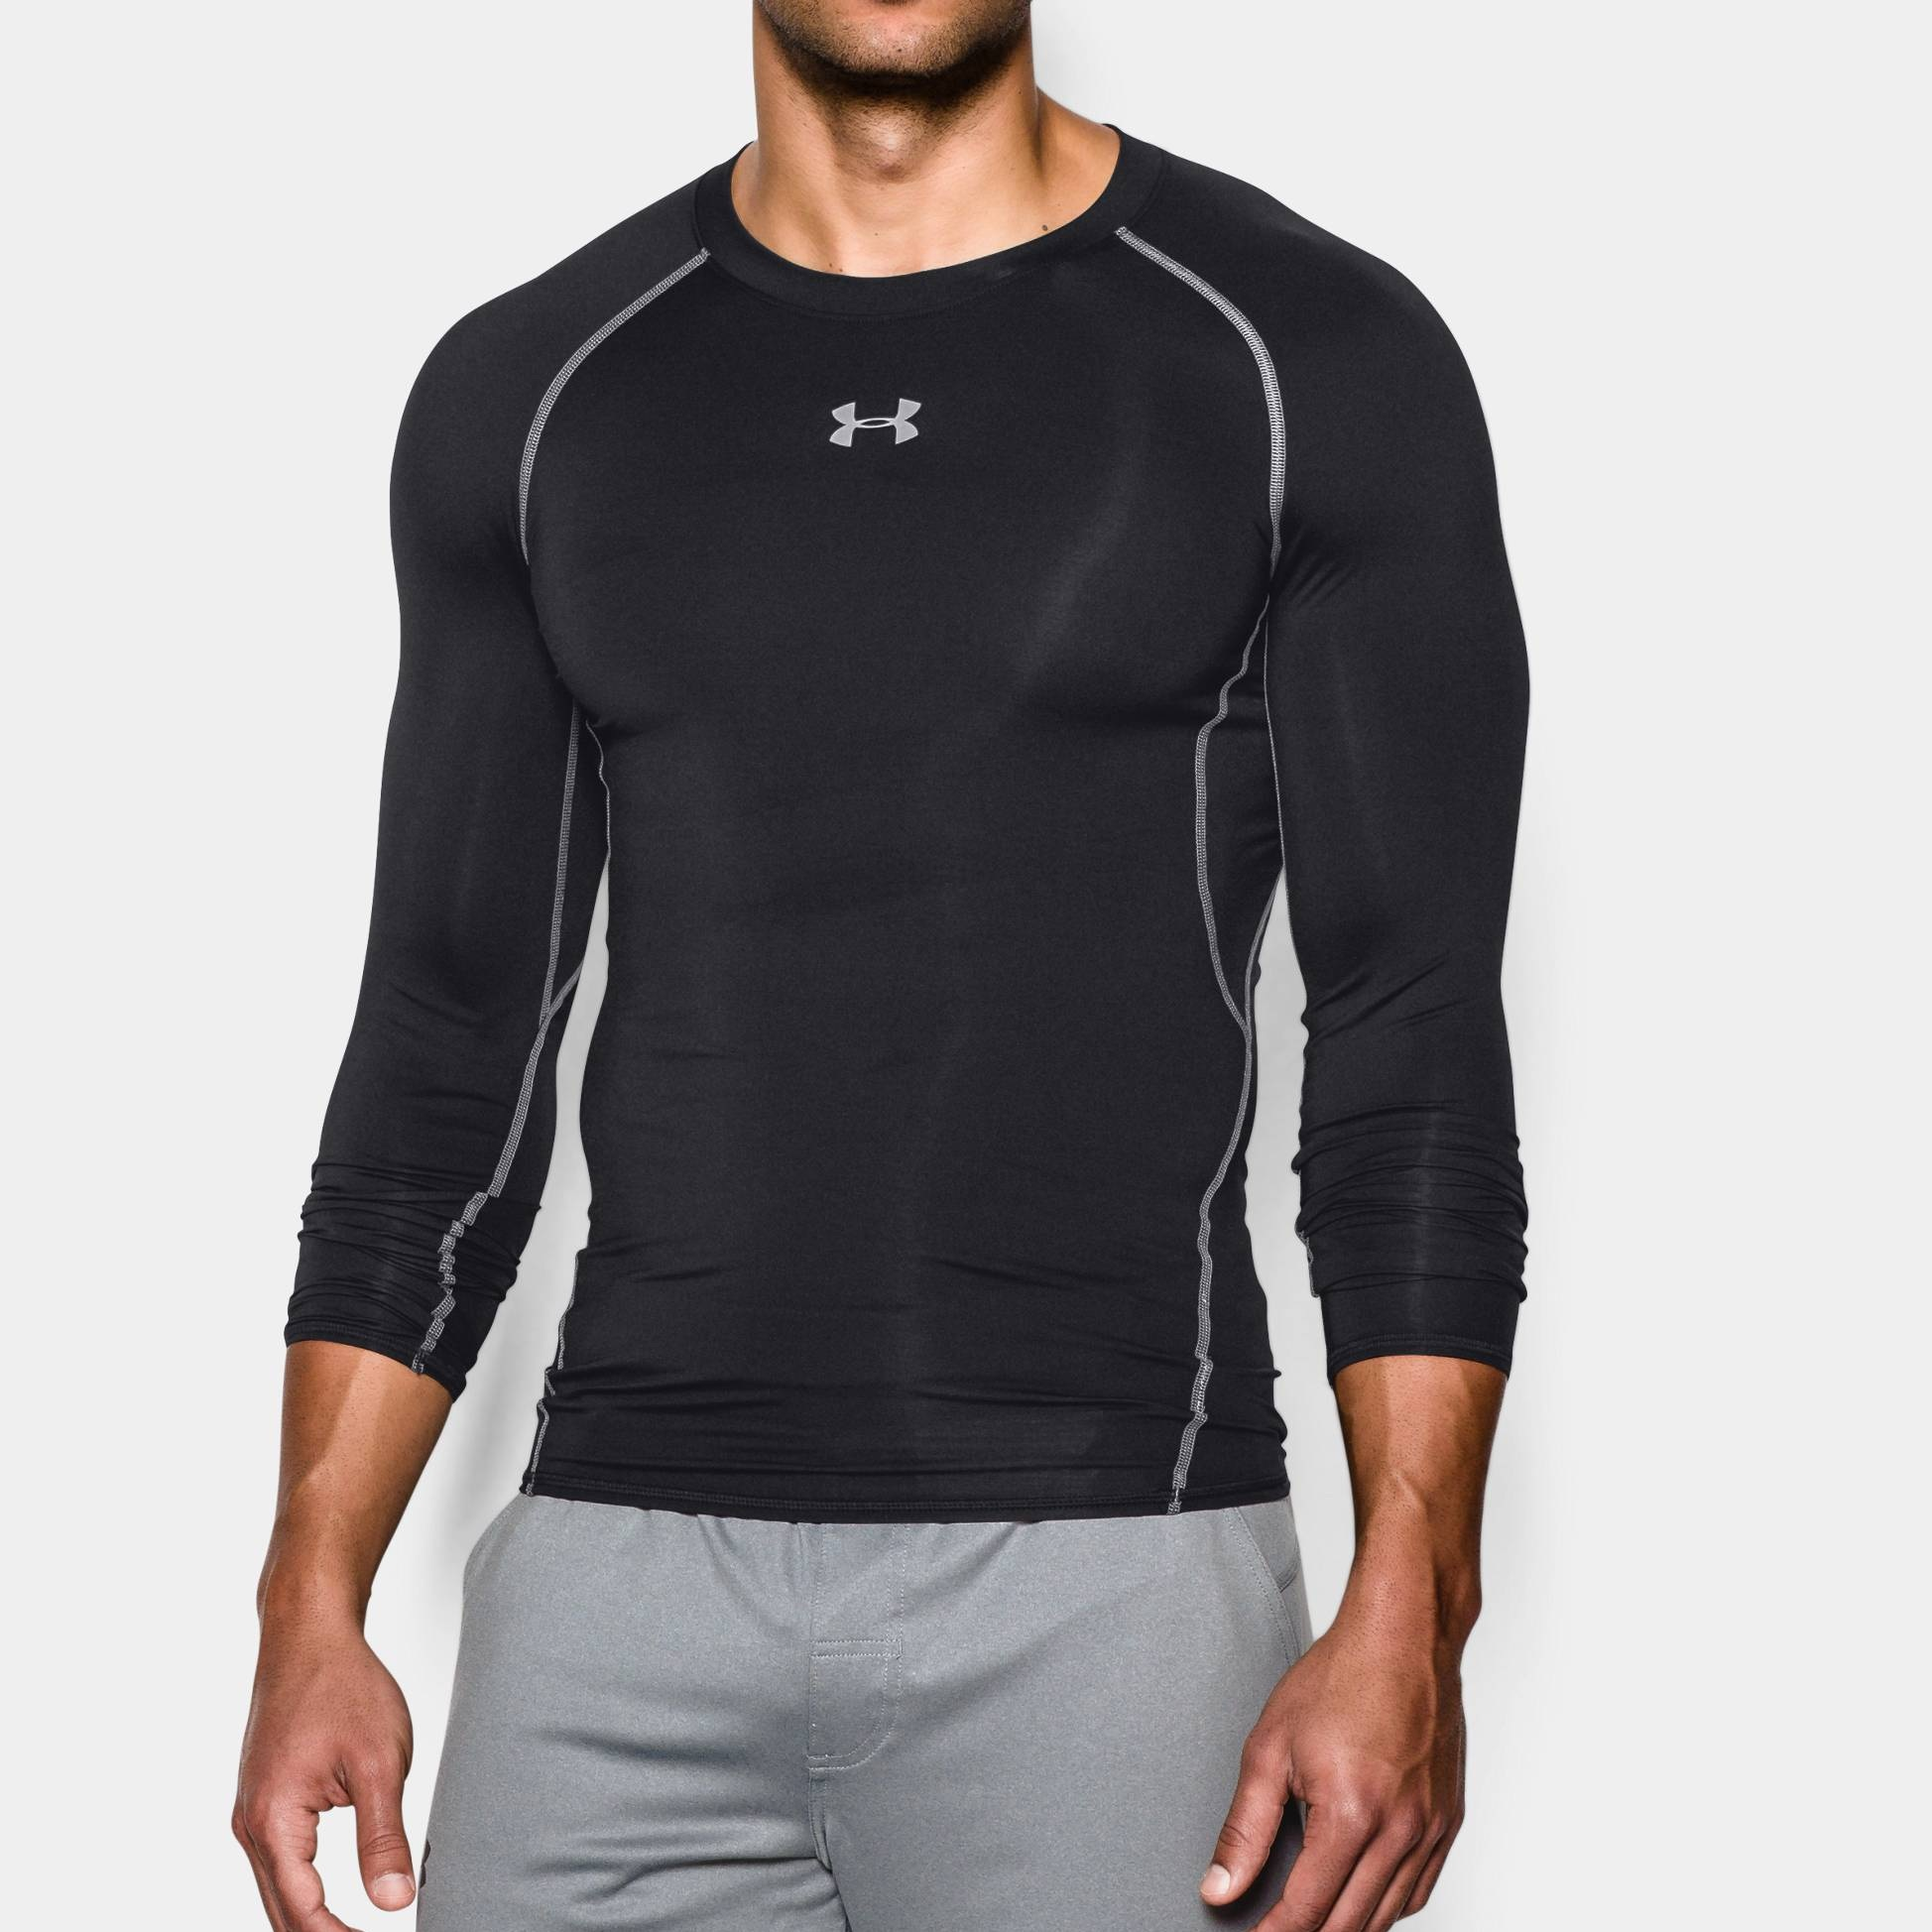 Clothing under armour long sleeve compr shirt fitness for Under armour i will shirt